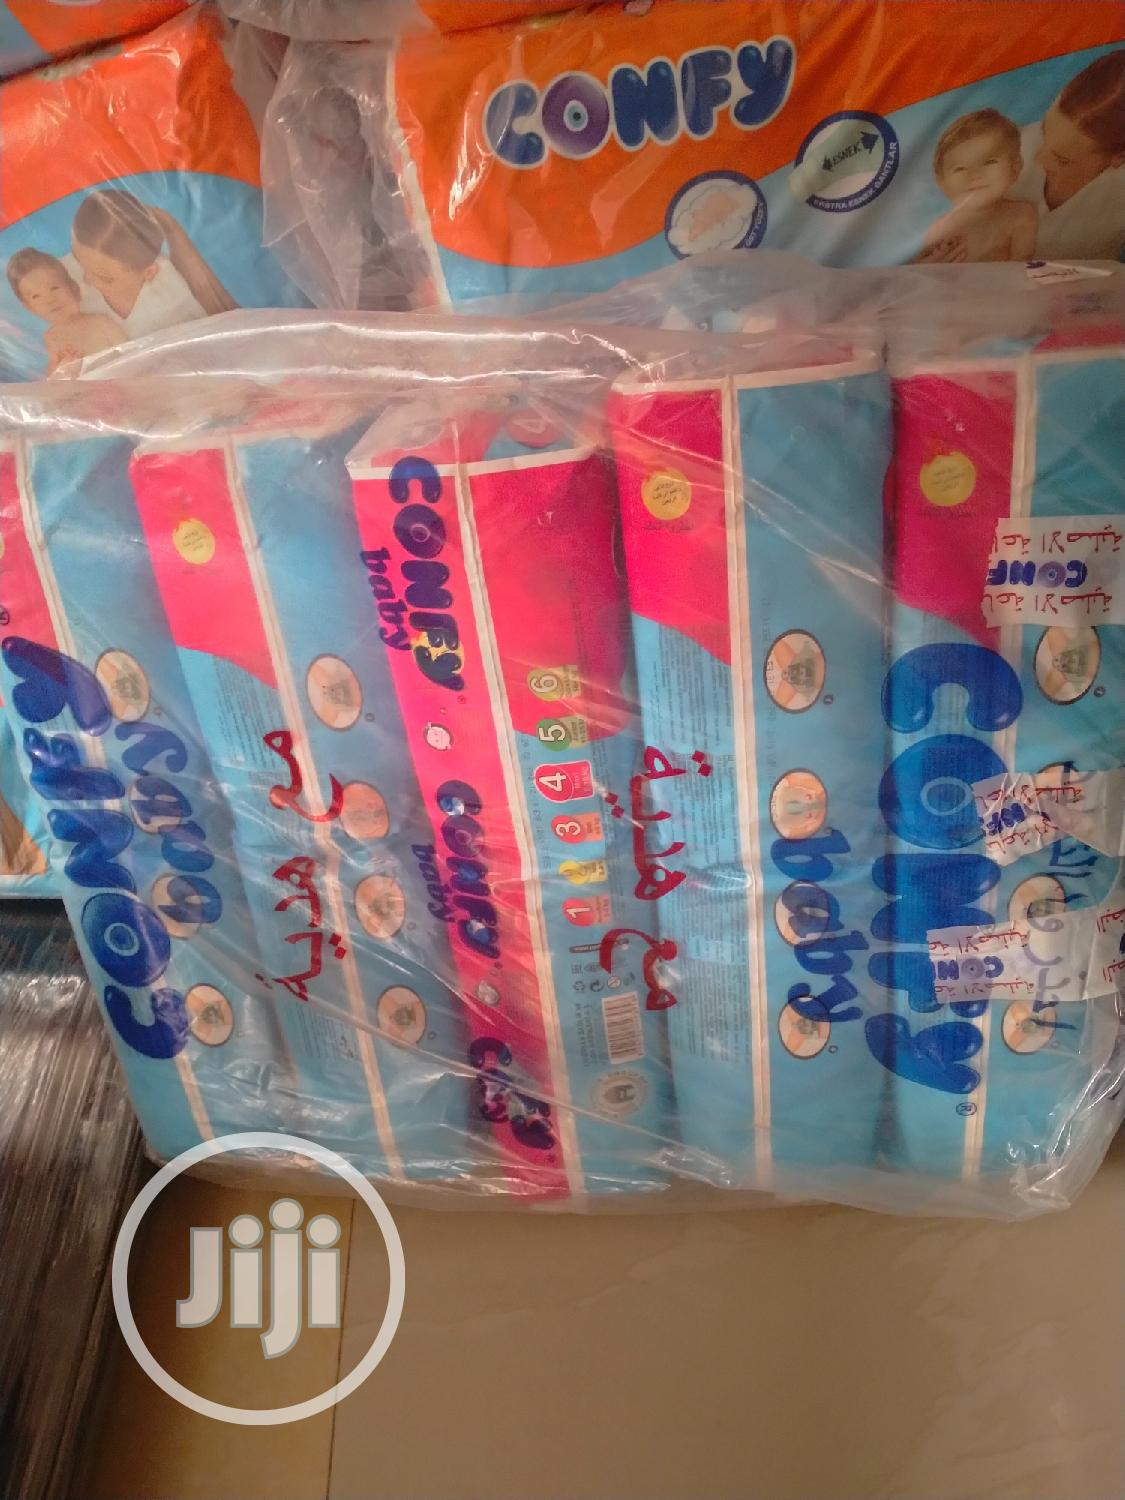 Comfy Imported Baby Diapers